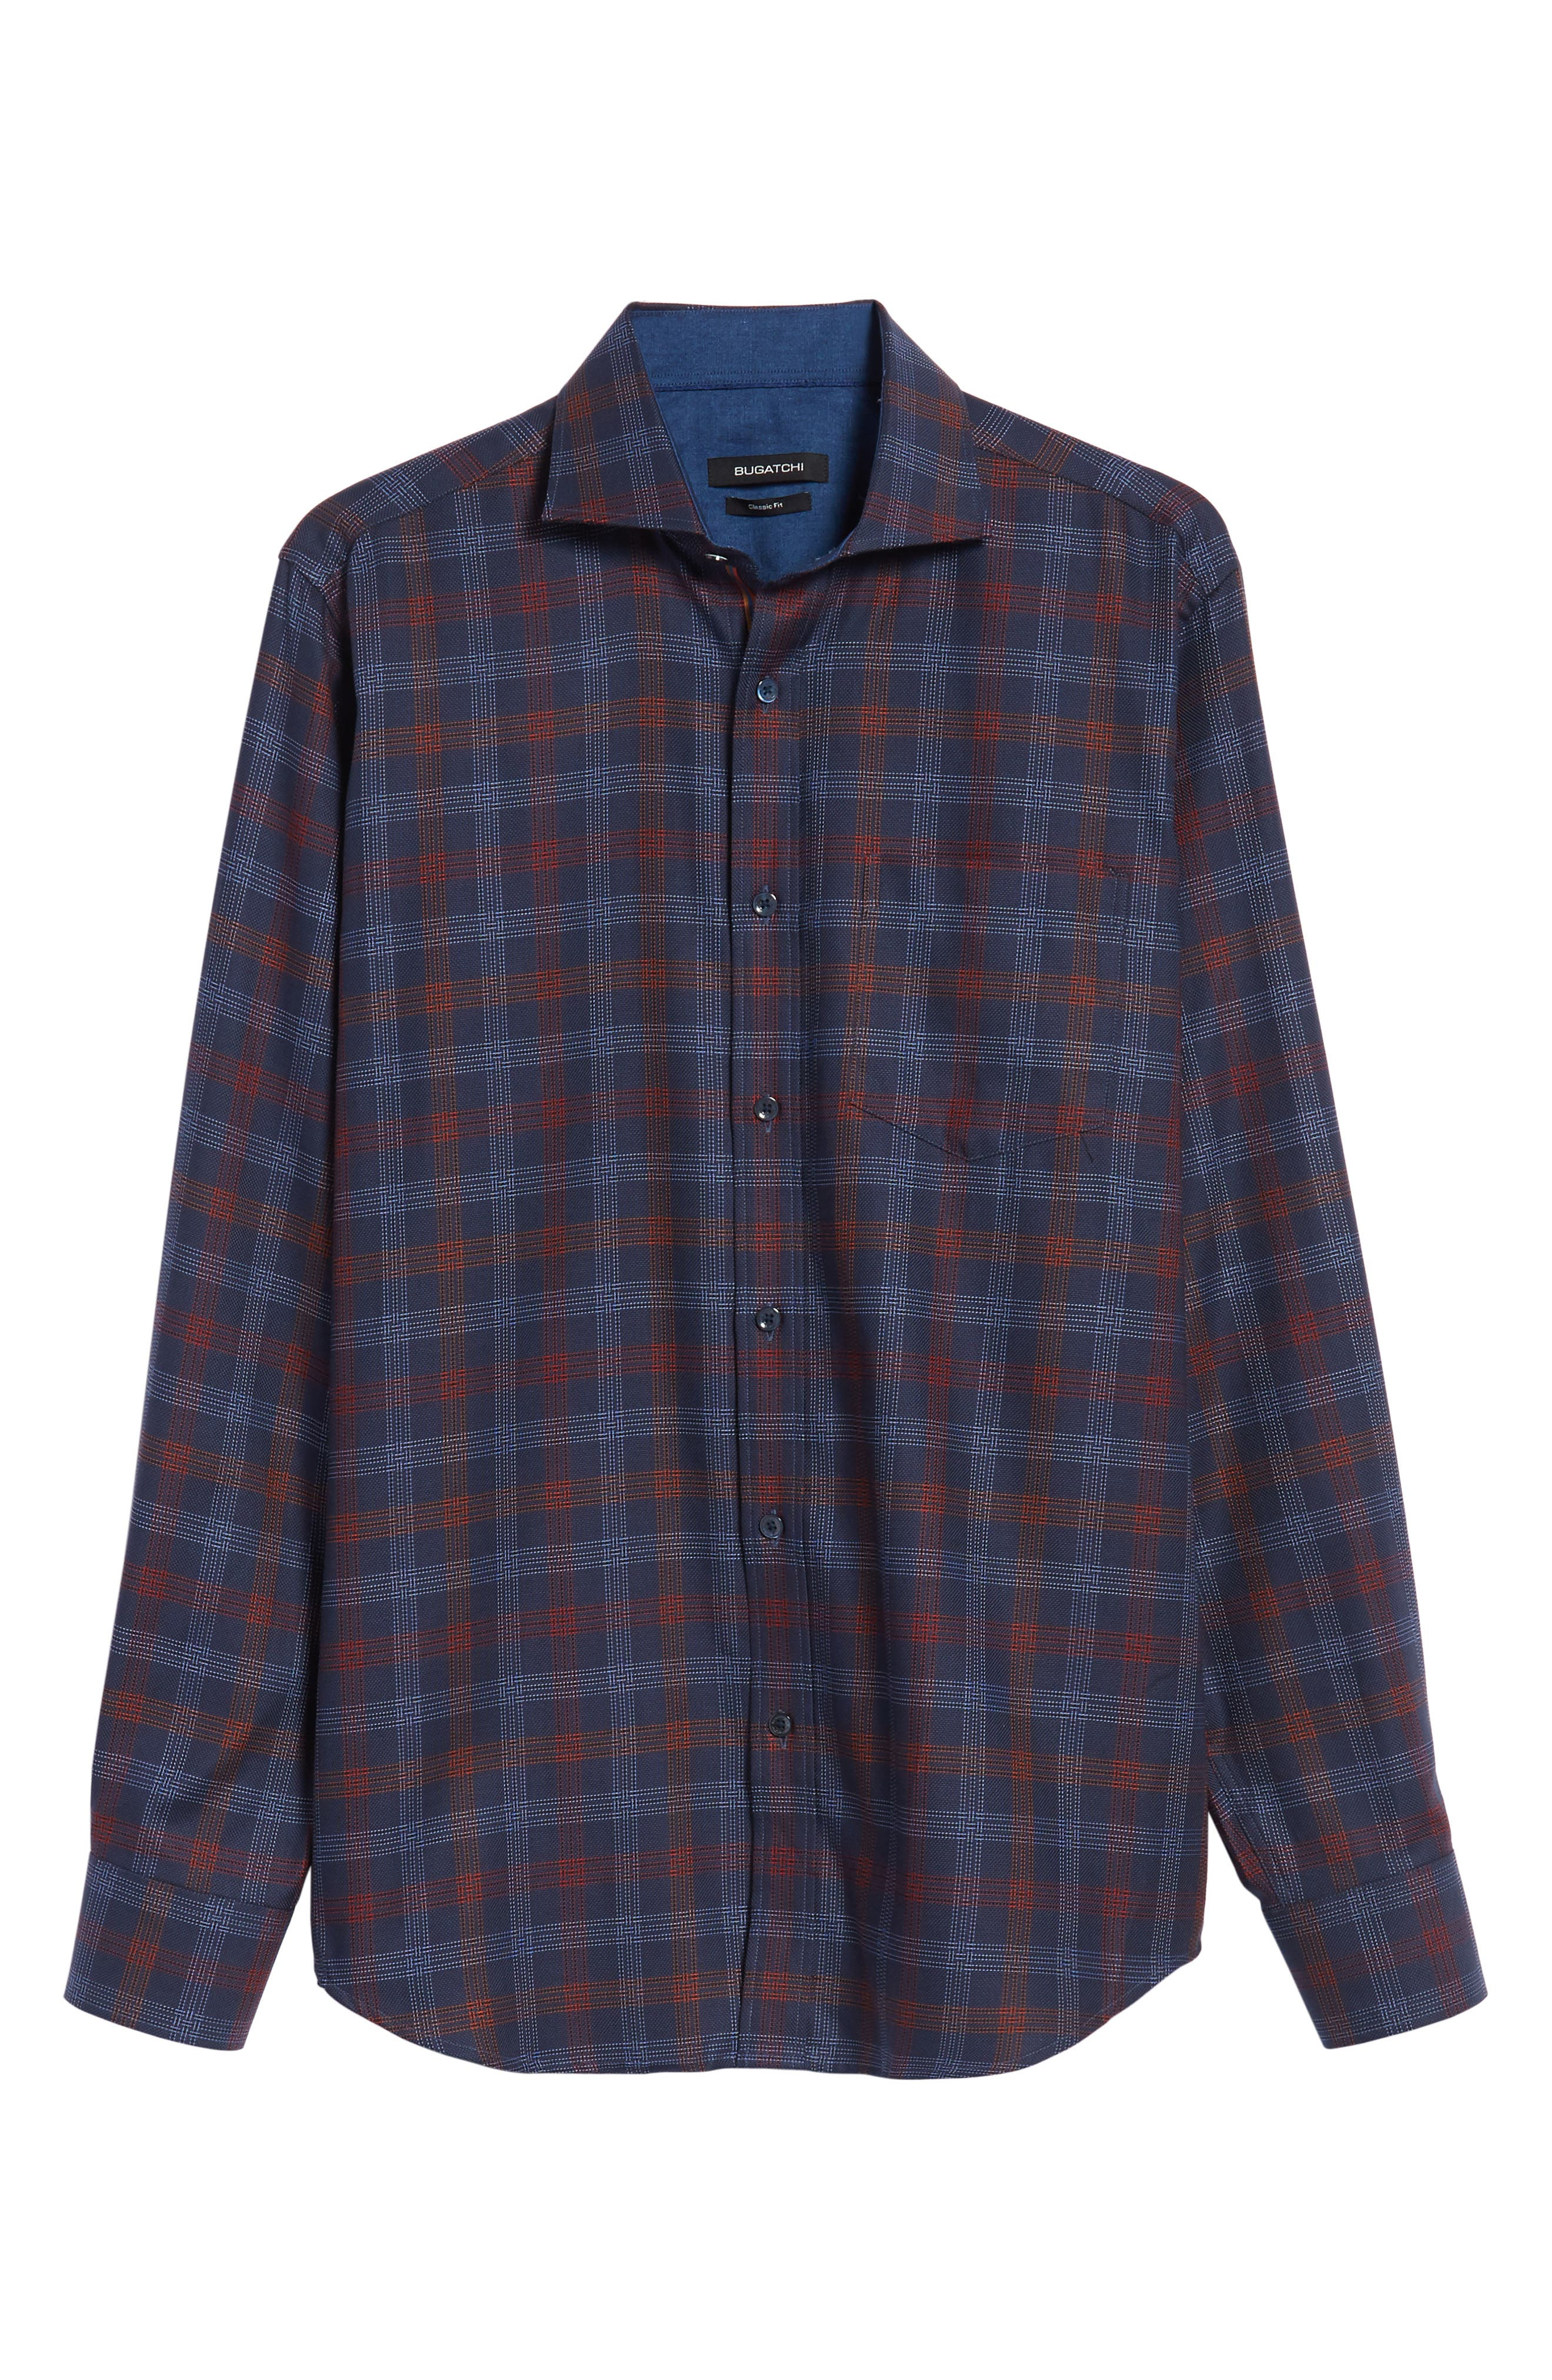 Classic Fit Pinstripe Check Sport Shirt,                             Alternate thumbnail 6, color,                             410